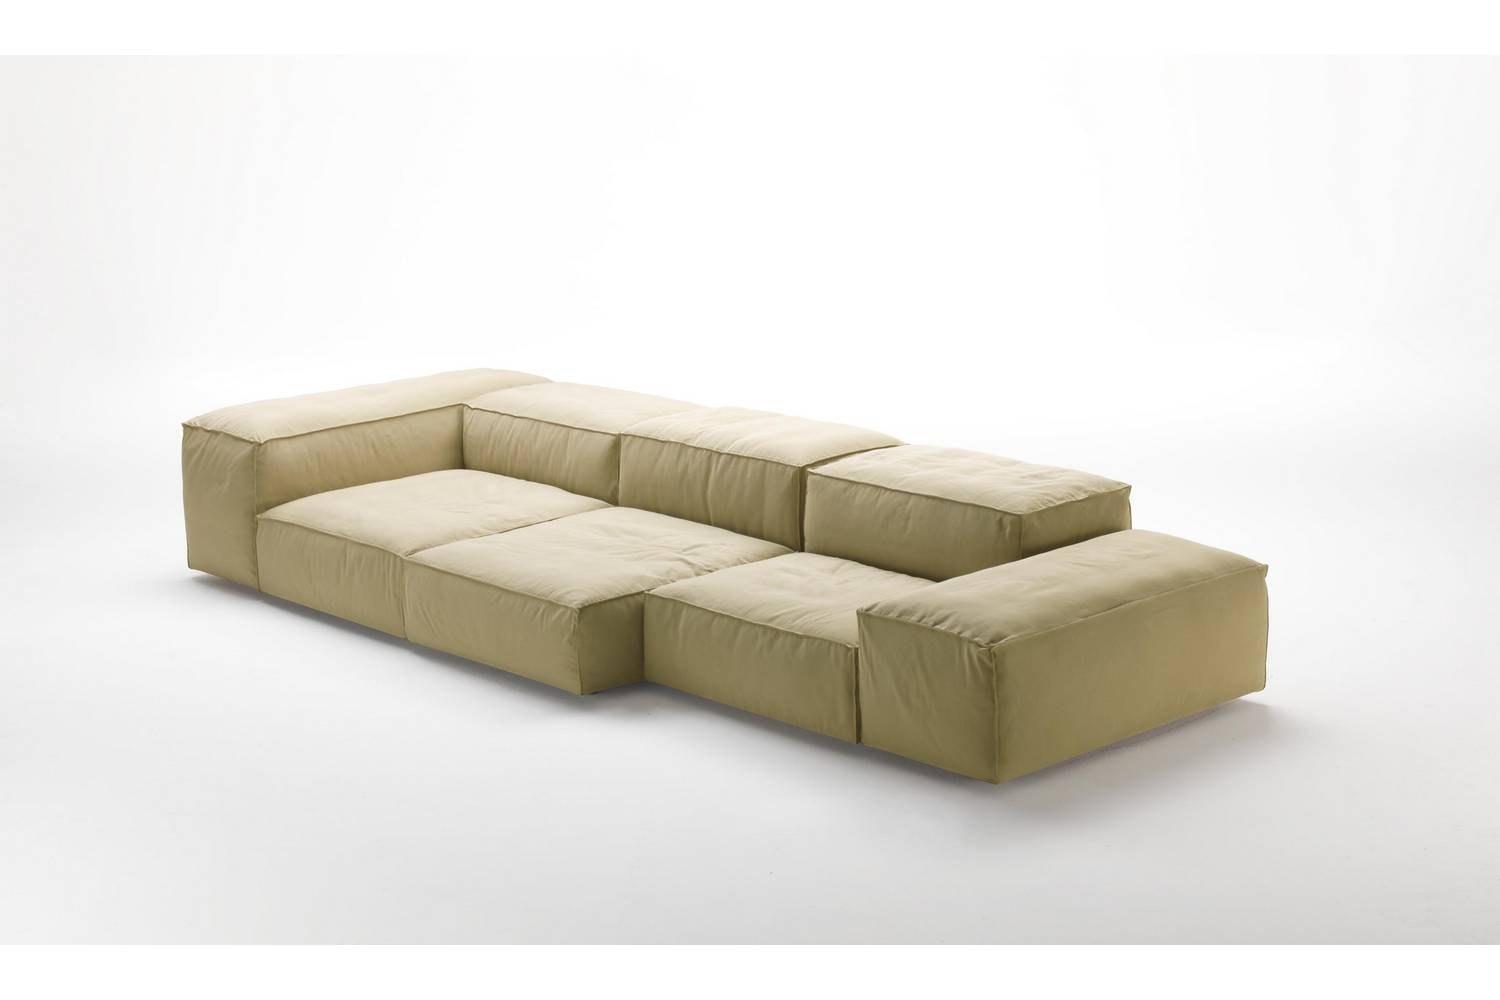 Extrasoft Sofa by Piero Lissoni for Living Divani Space  : extrasoft700604 from www.spacefurniture.com.au size 1500 x 1000 jpeg 36kB